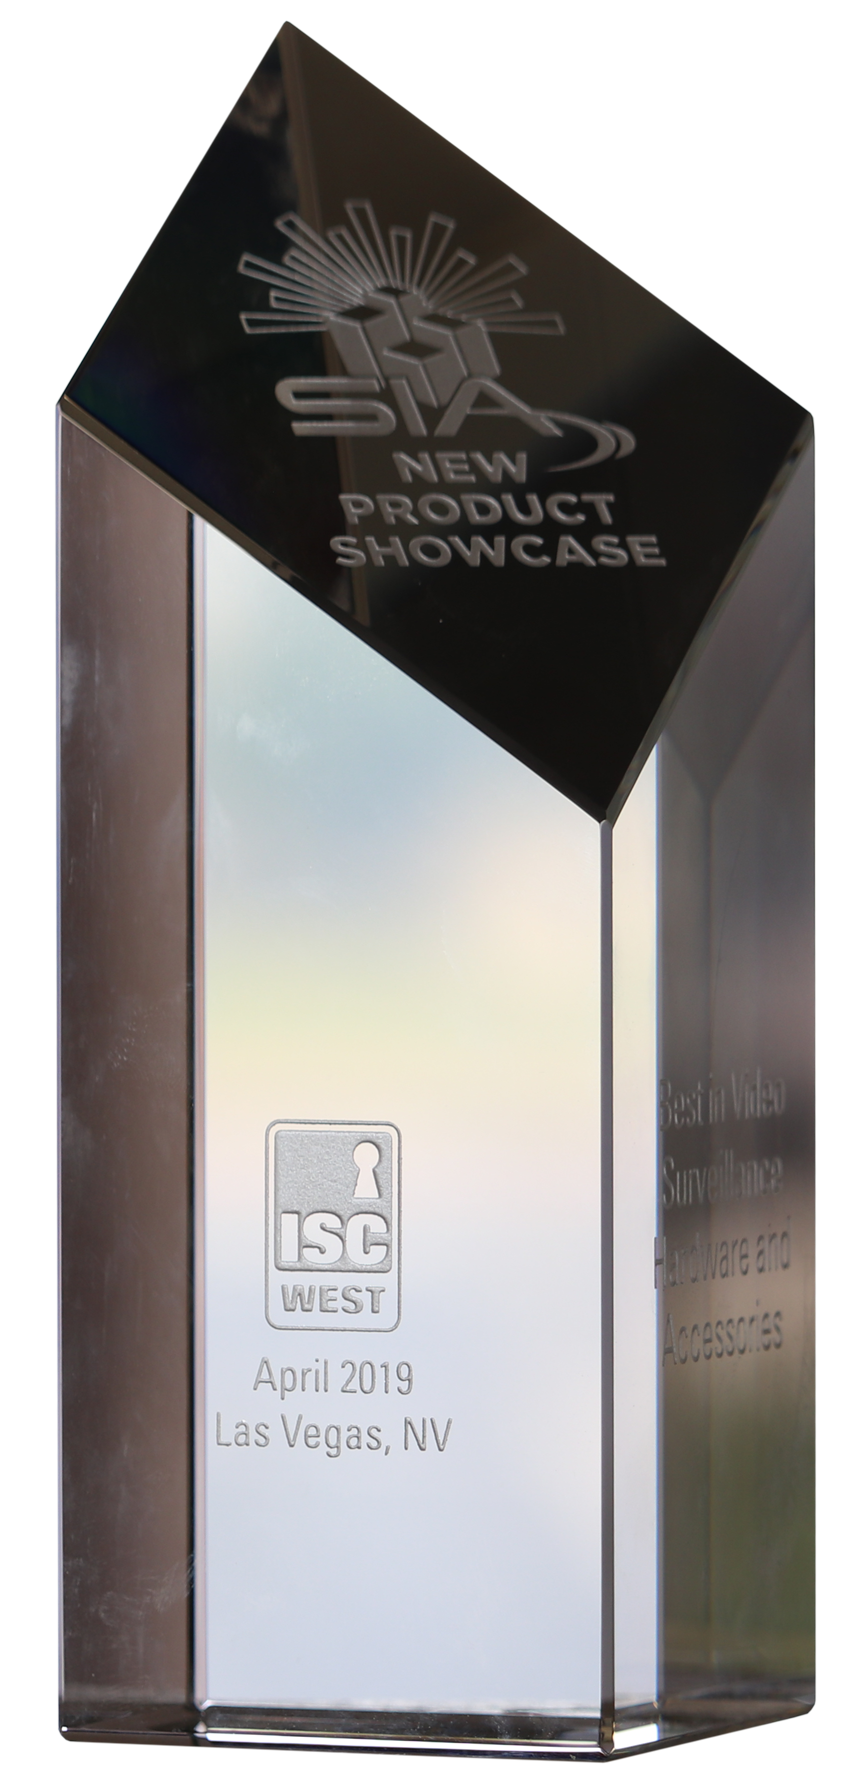 dotworkz sia 2019 new product showcase aka nps crystal award best in video surveillance hardware and accessories side